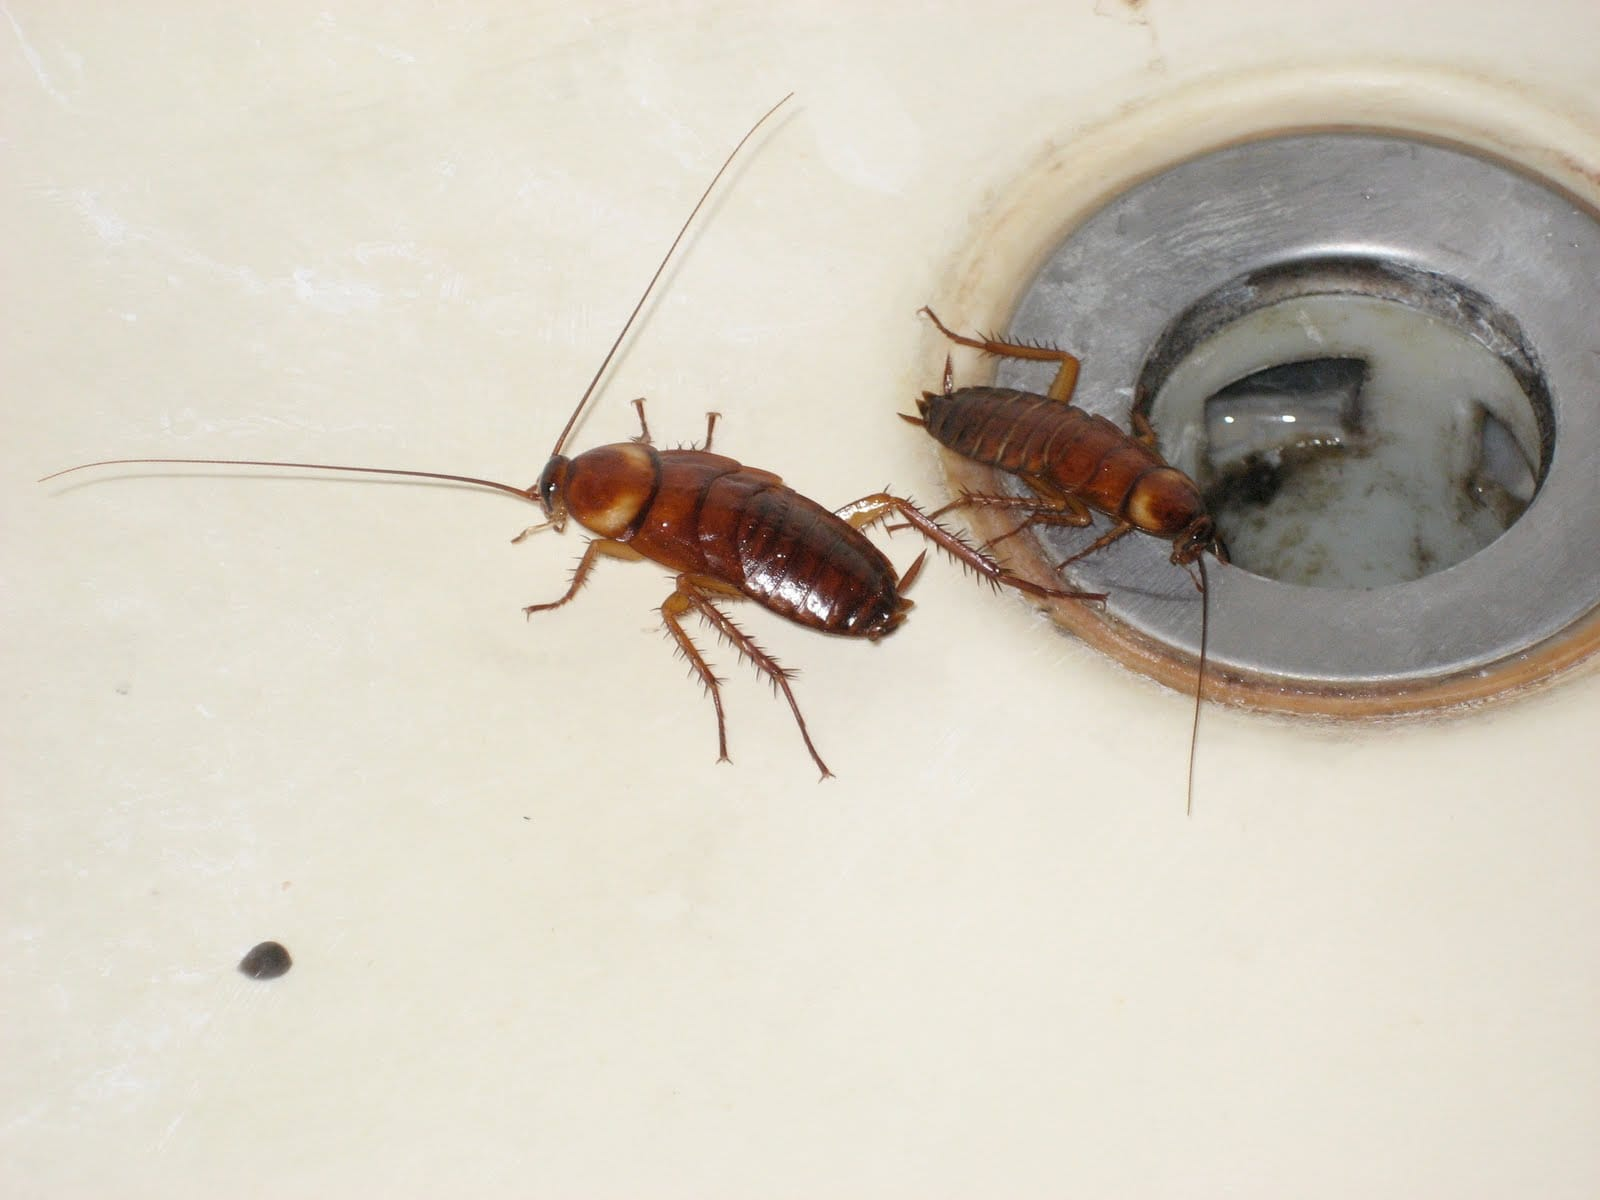 Small cockroaches in bathroom